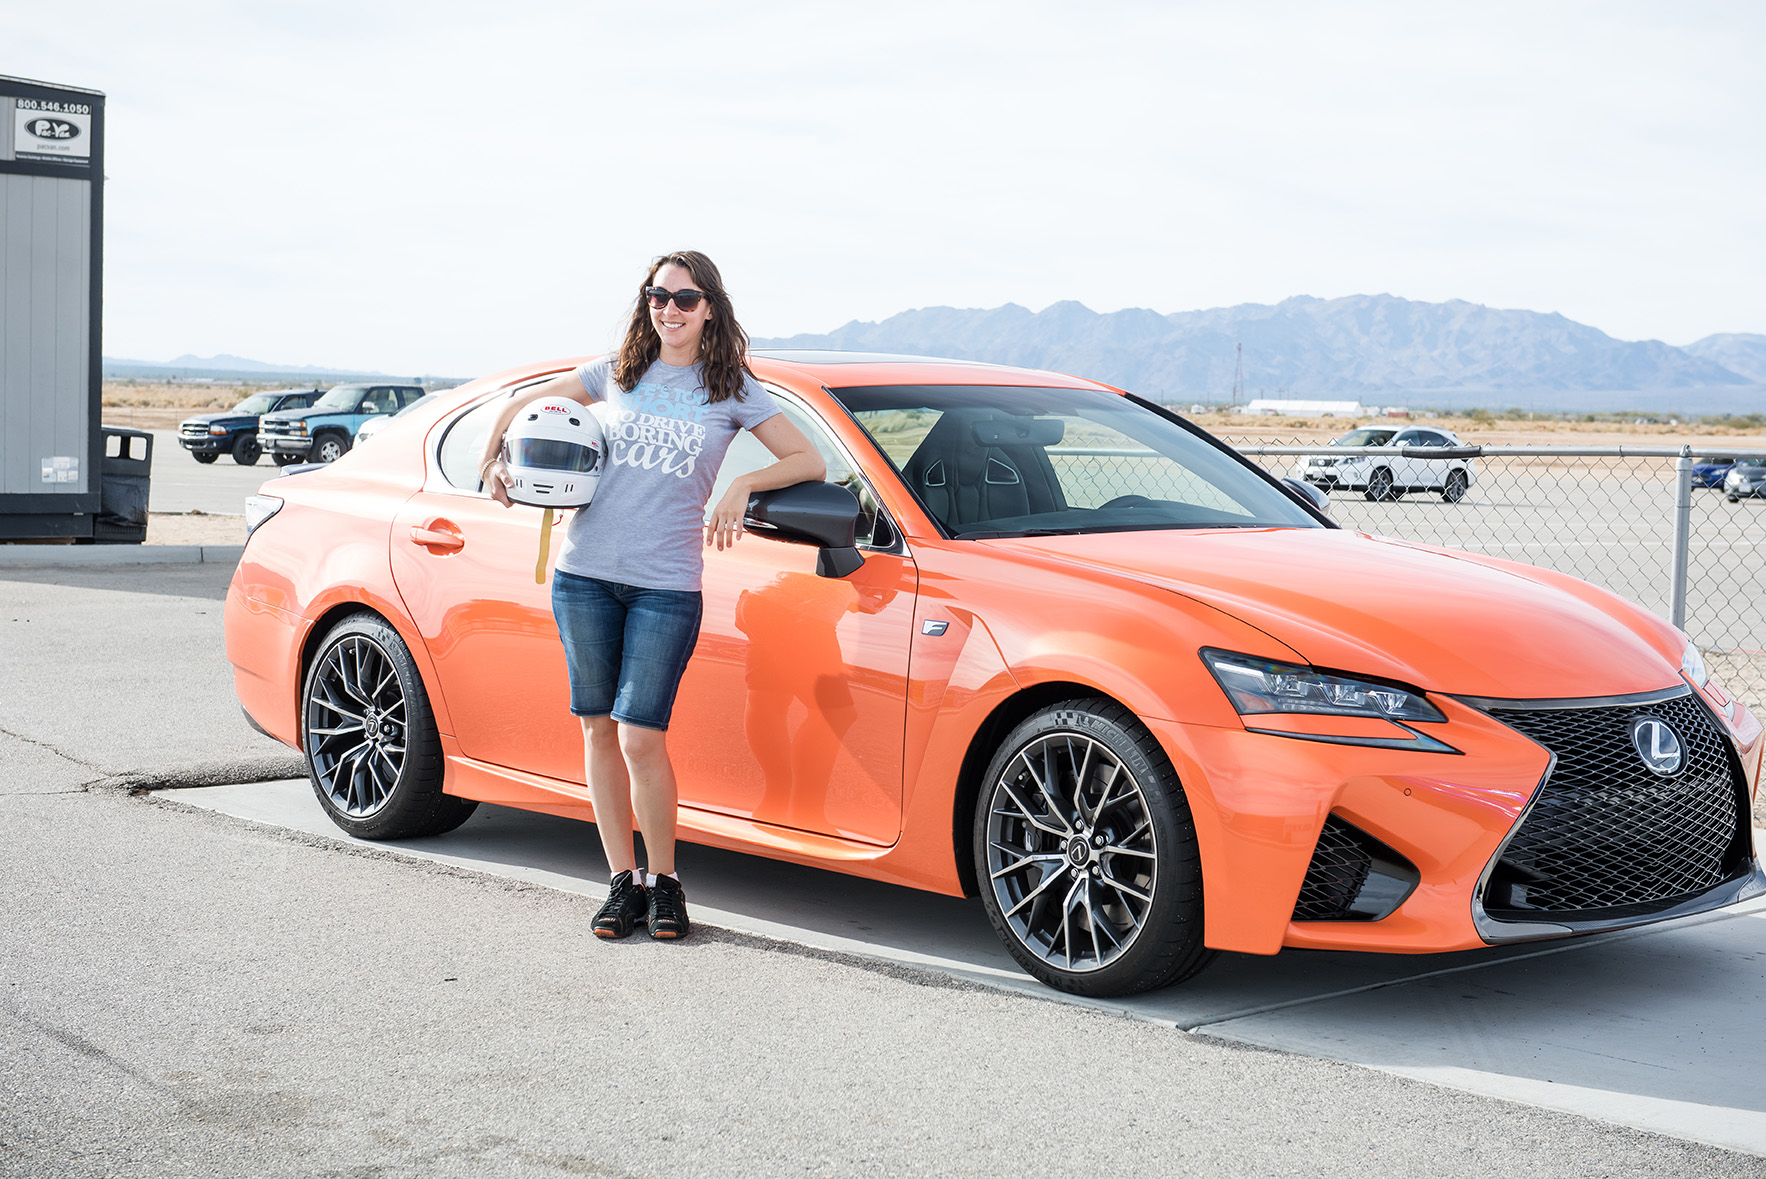 Lexus Heels & Wheels Performance Drive With The GS F and RC F